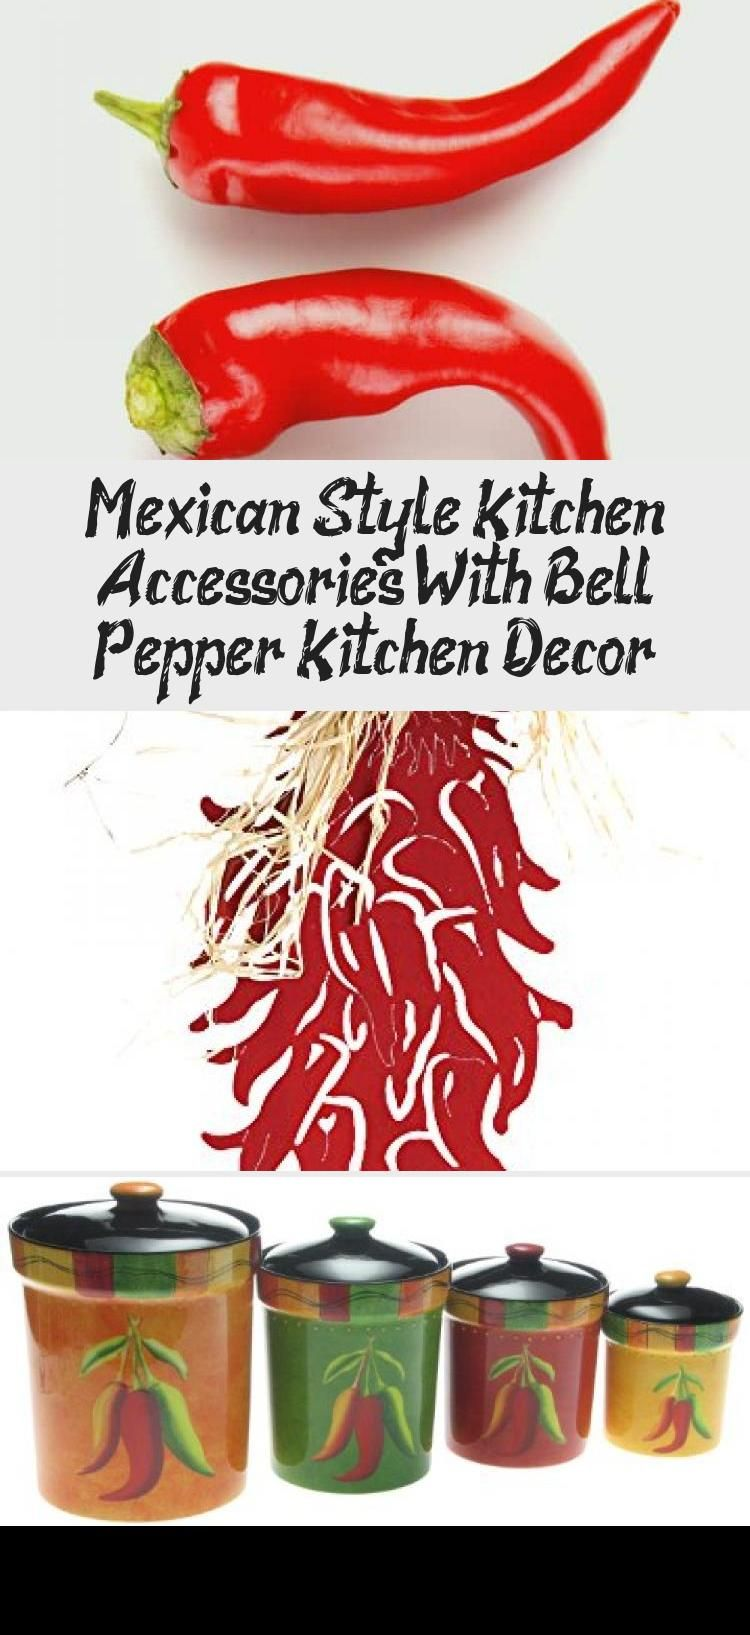 Mexican Style Kitchen Accessories With Bell Pepper Kitchen Decor Kitchen Mexican Style Kitchens Kitchen Styling Kitchen Accessories